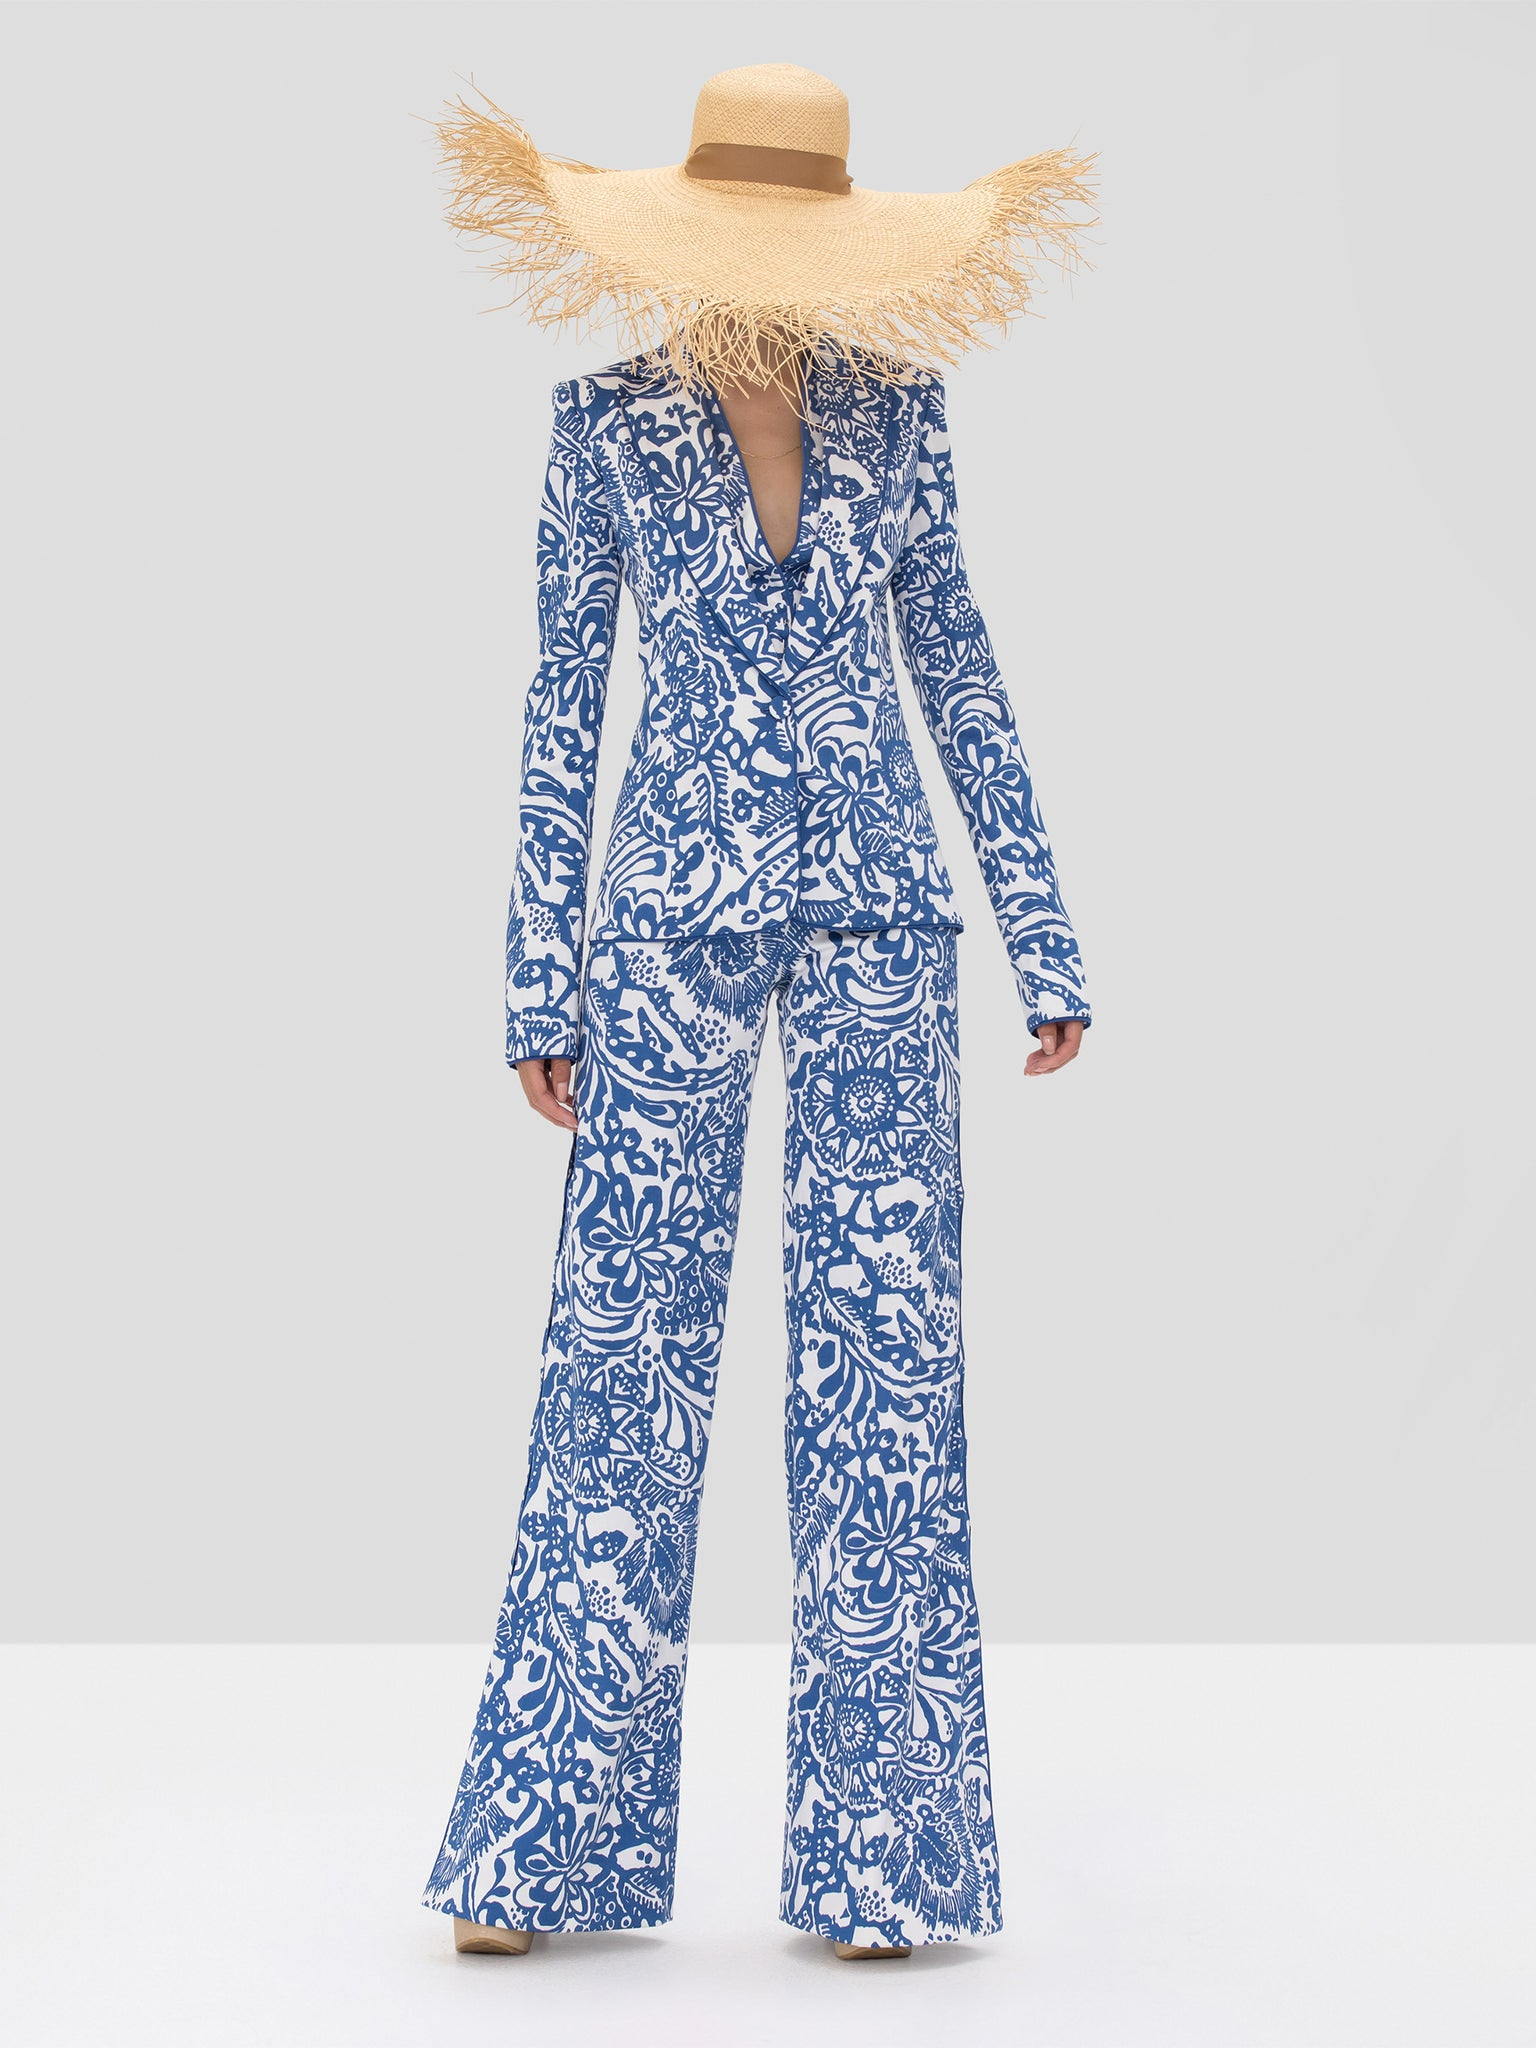 Alexis Tika Jacket in Tropical Blue from Spring Summer 2020 Collection